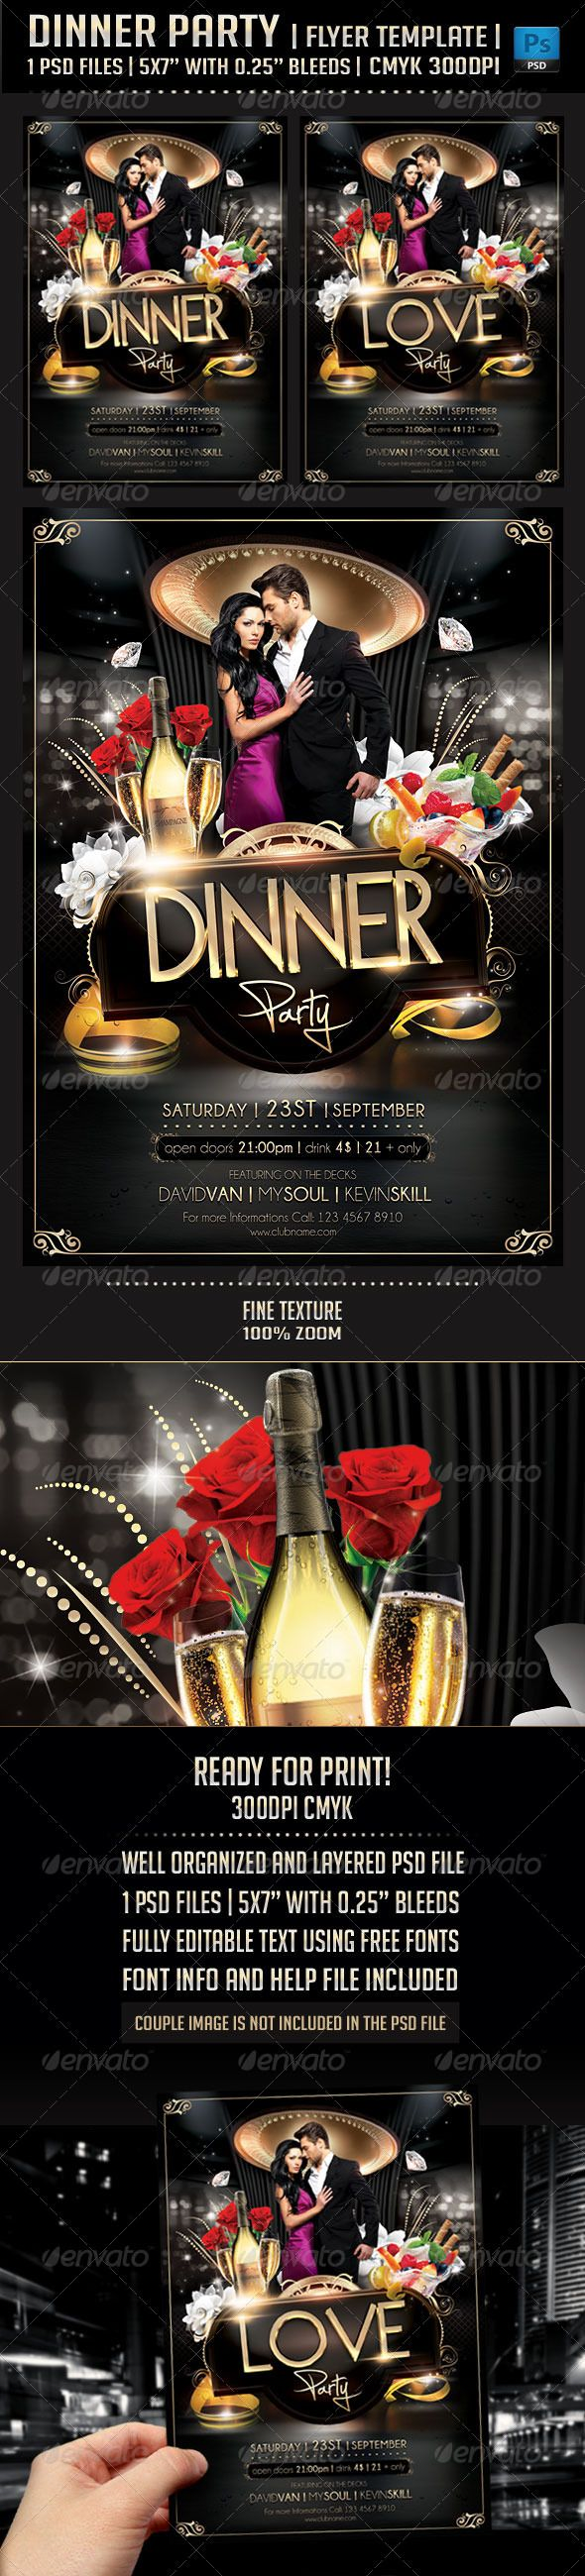 dinner party flyer template graphicriver dinner party flyer